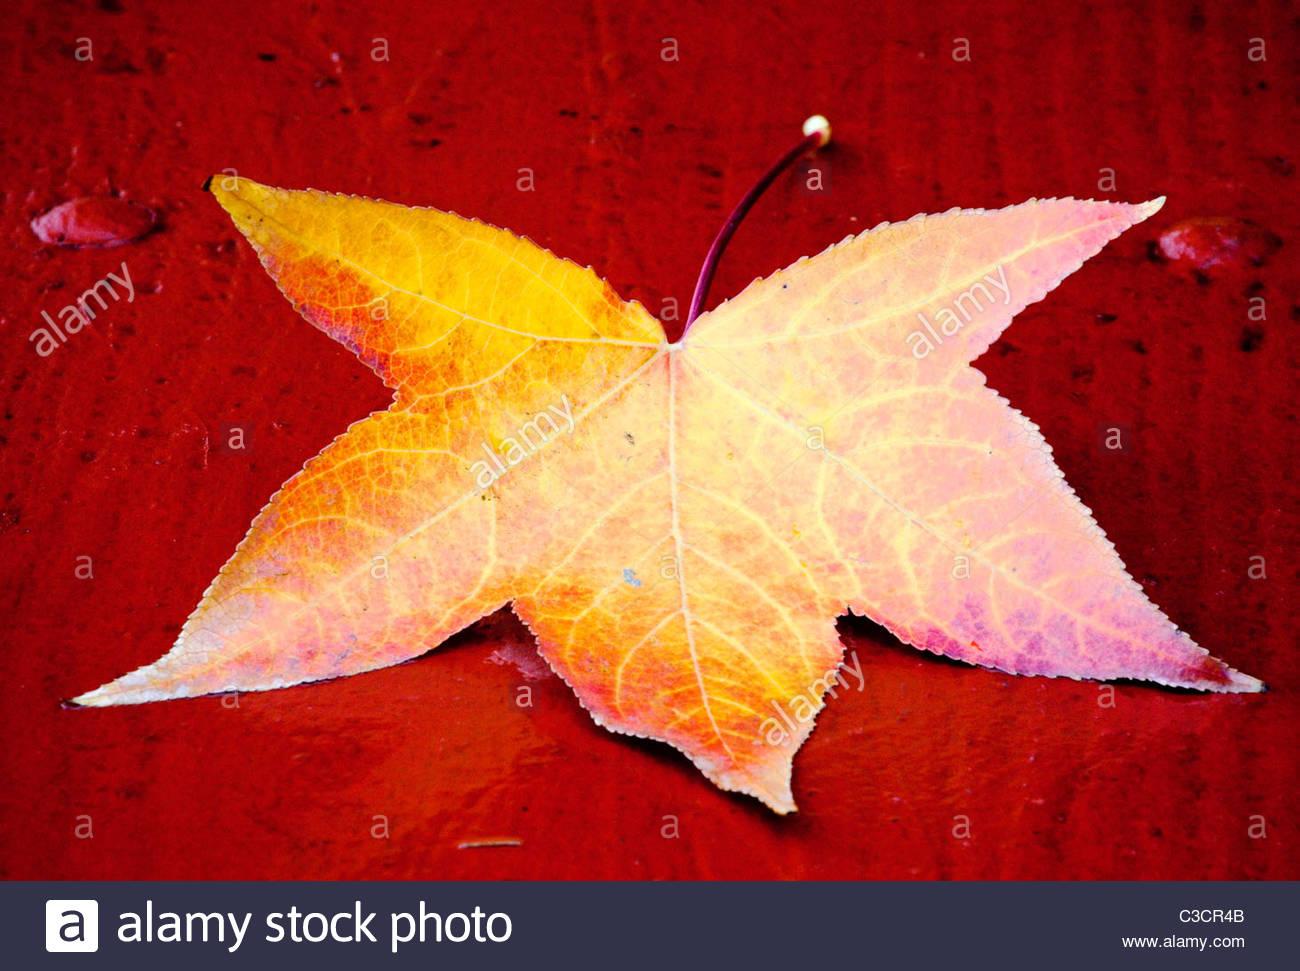 Autumn Leaf on Red Park Bench, Glendora, California - Stock Image